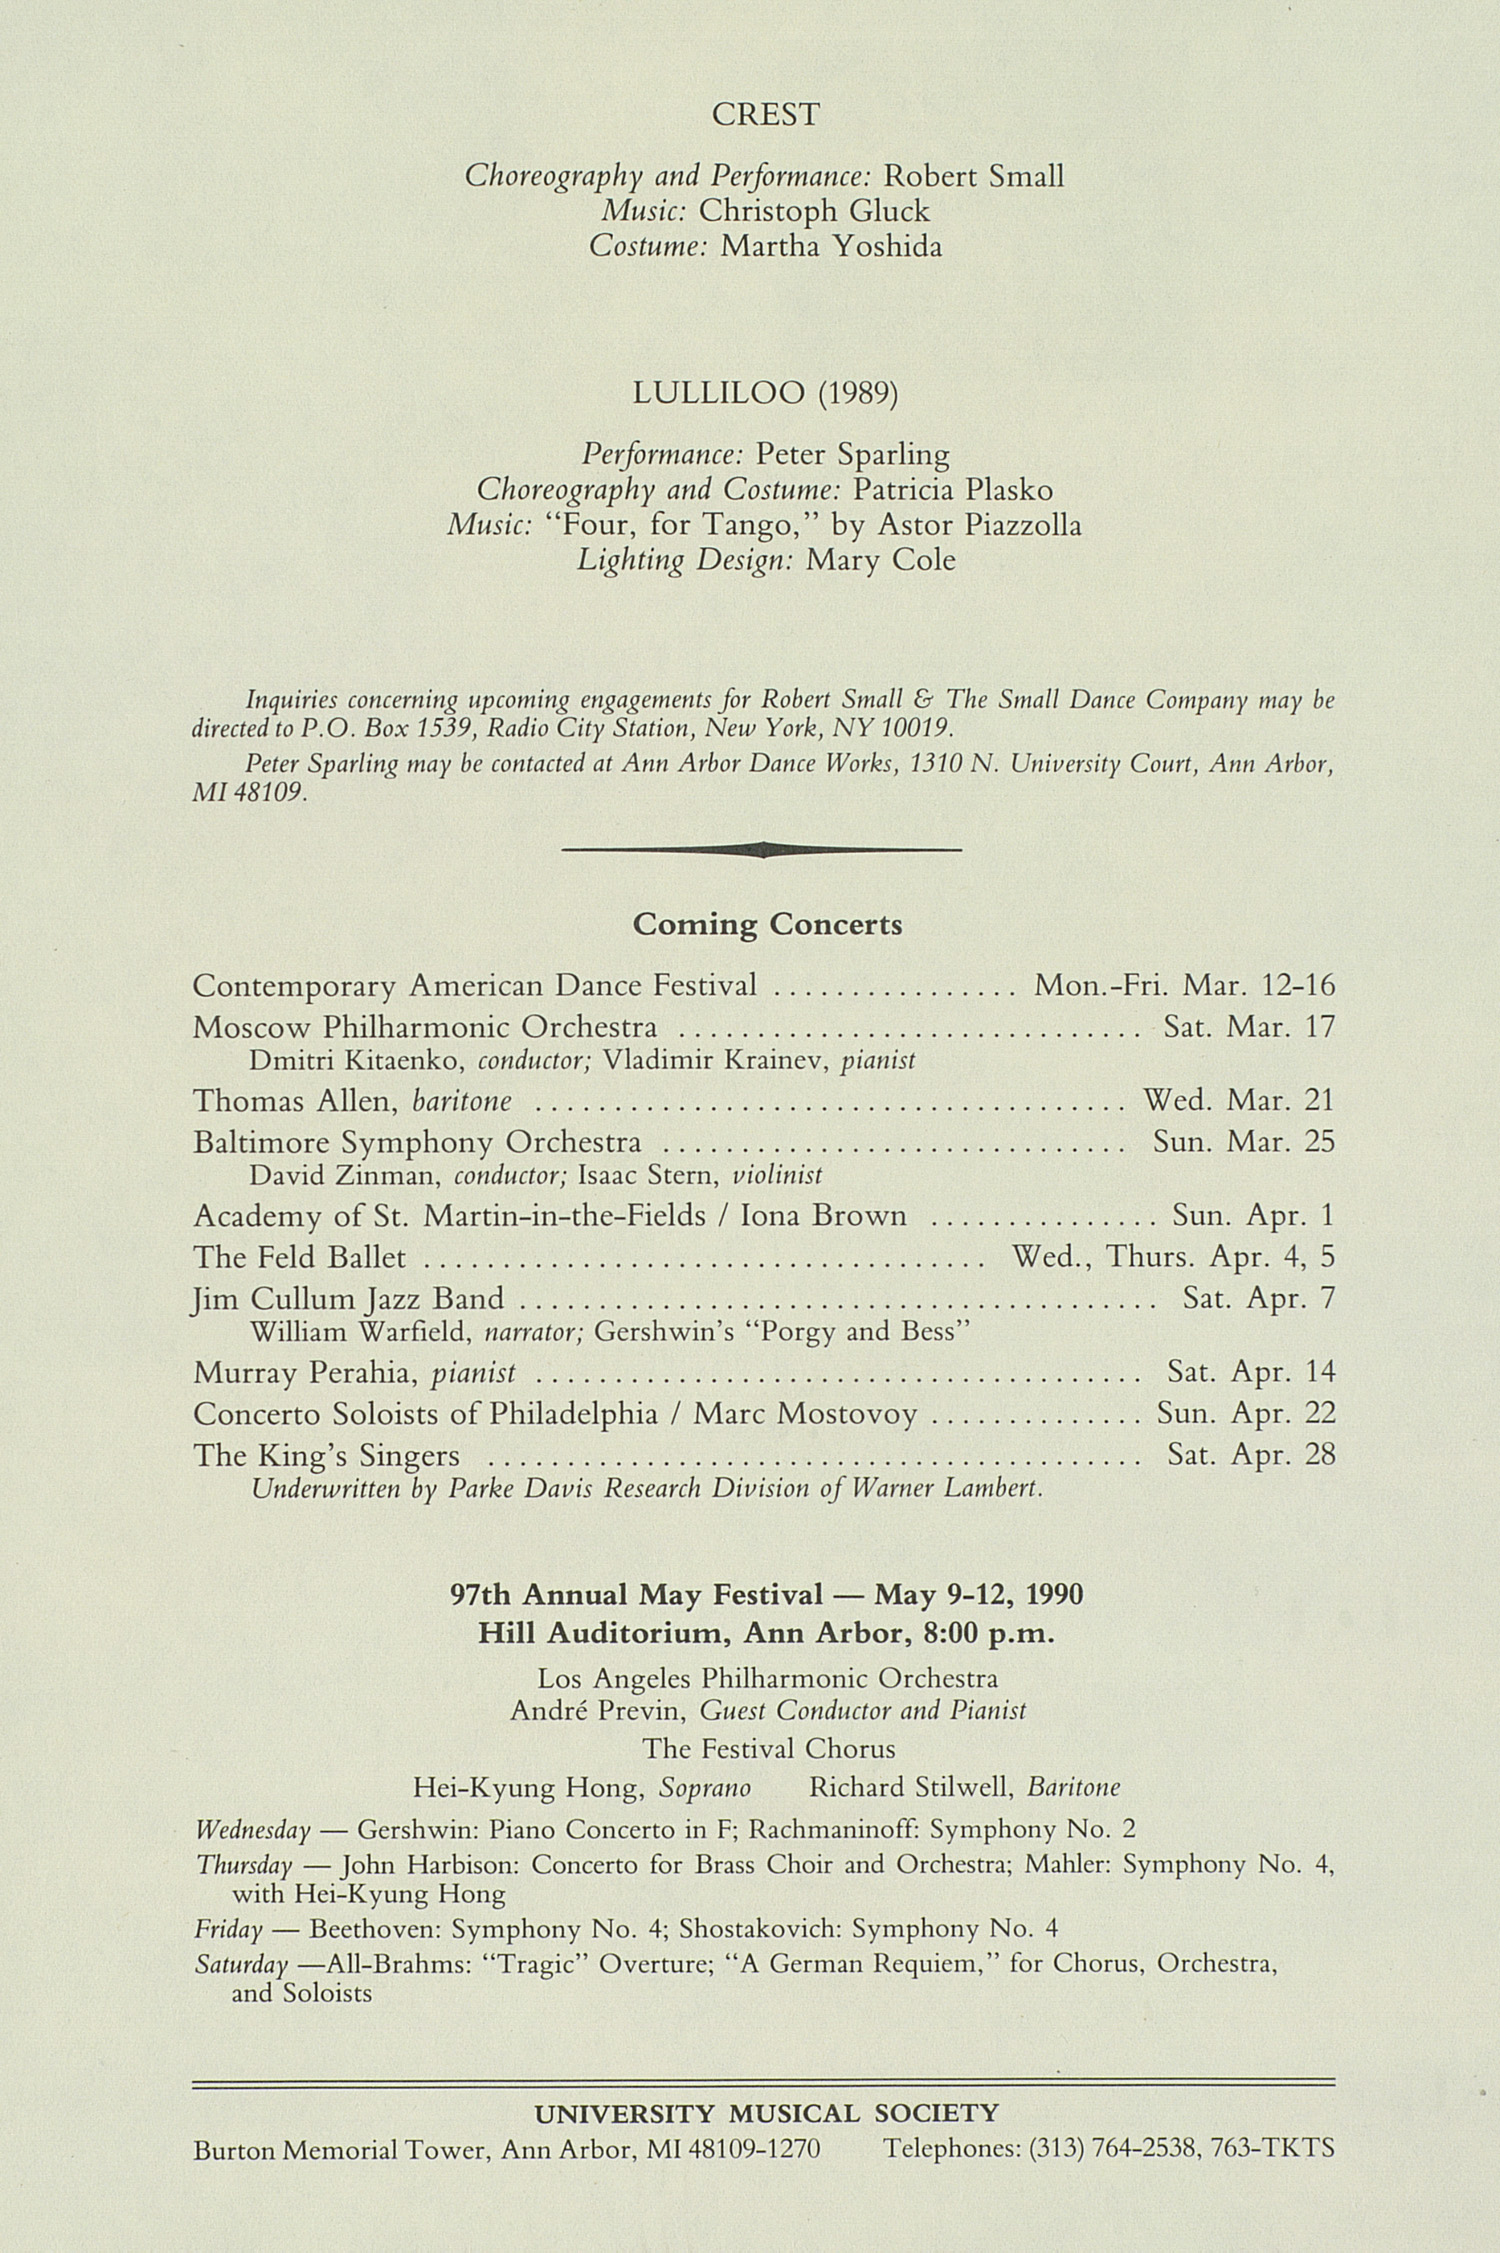 UMS Concert Program, March 14, 1990: International Presentations Of Music & Dance -- Peter Sparling And Robert Small image